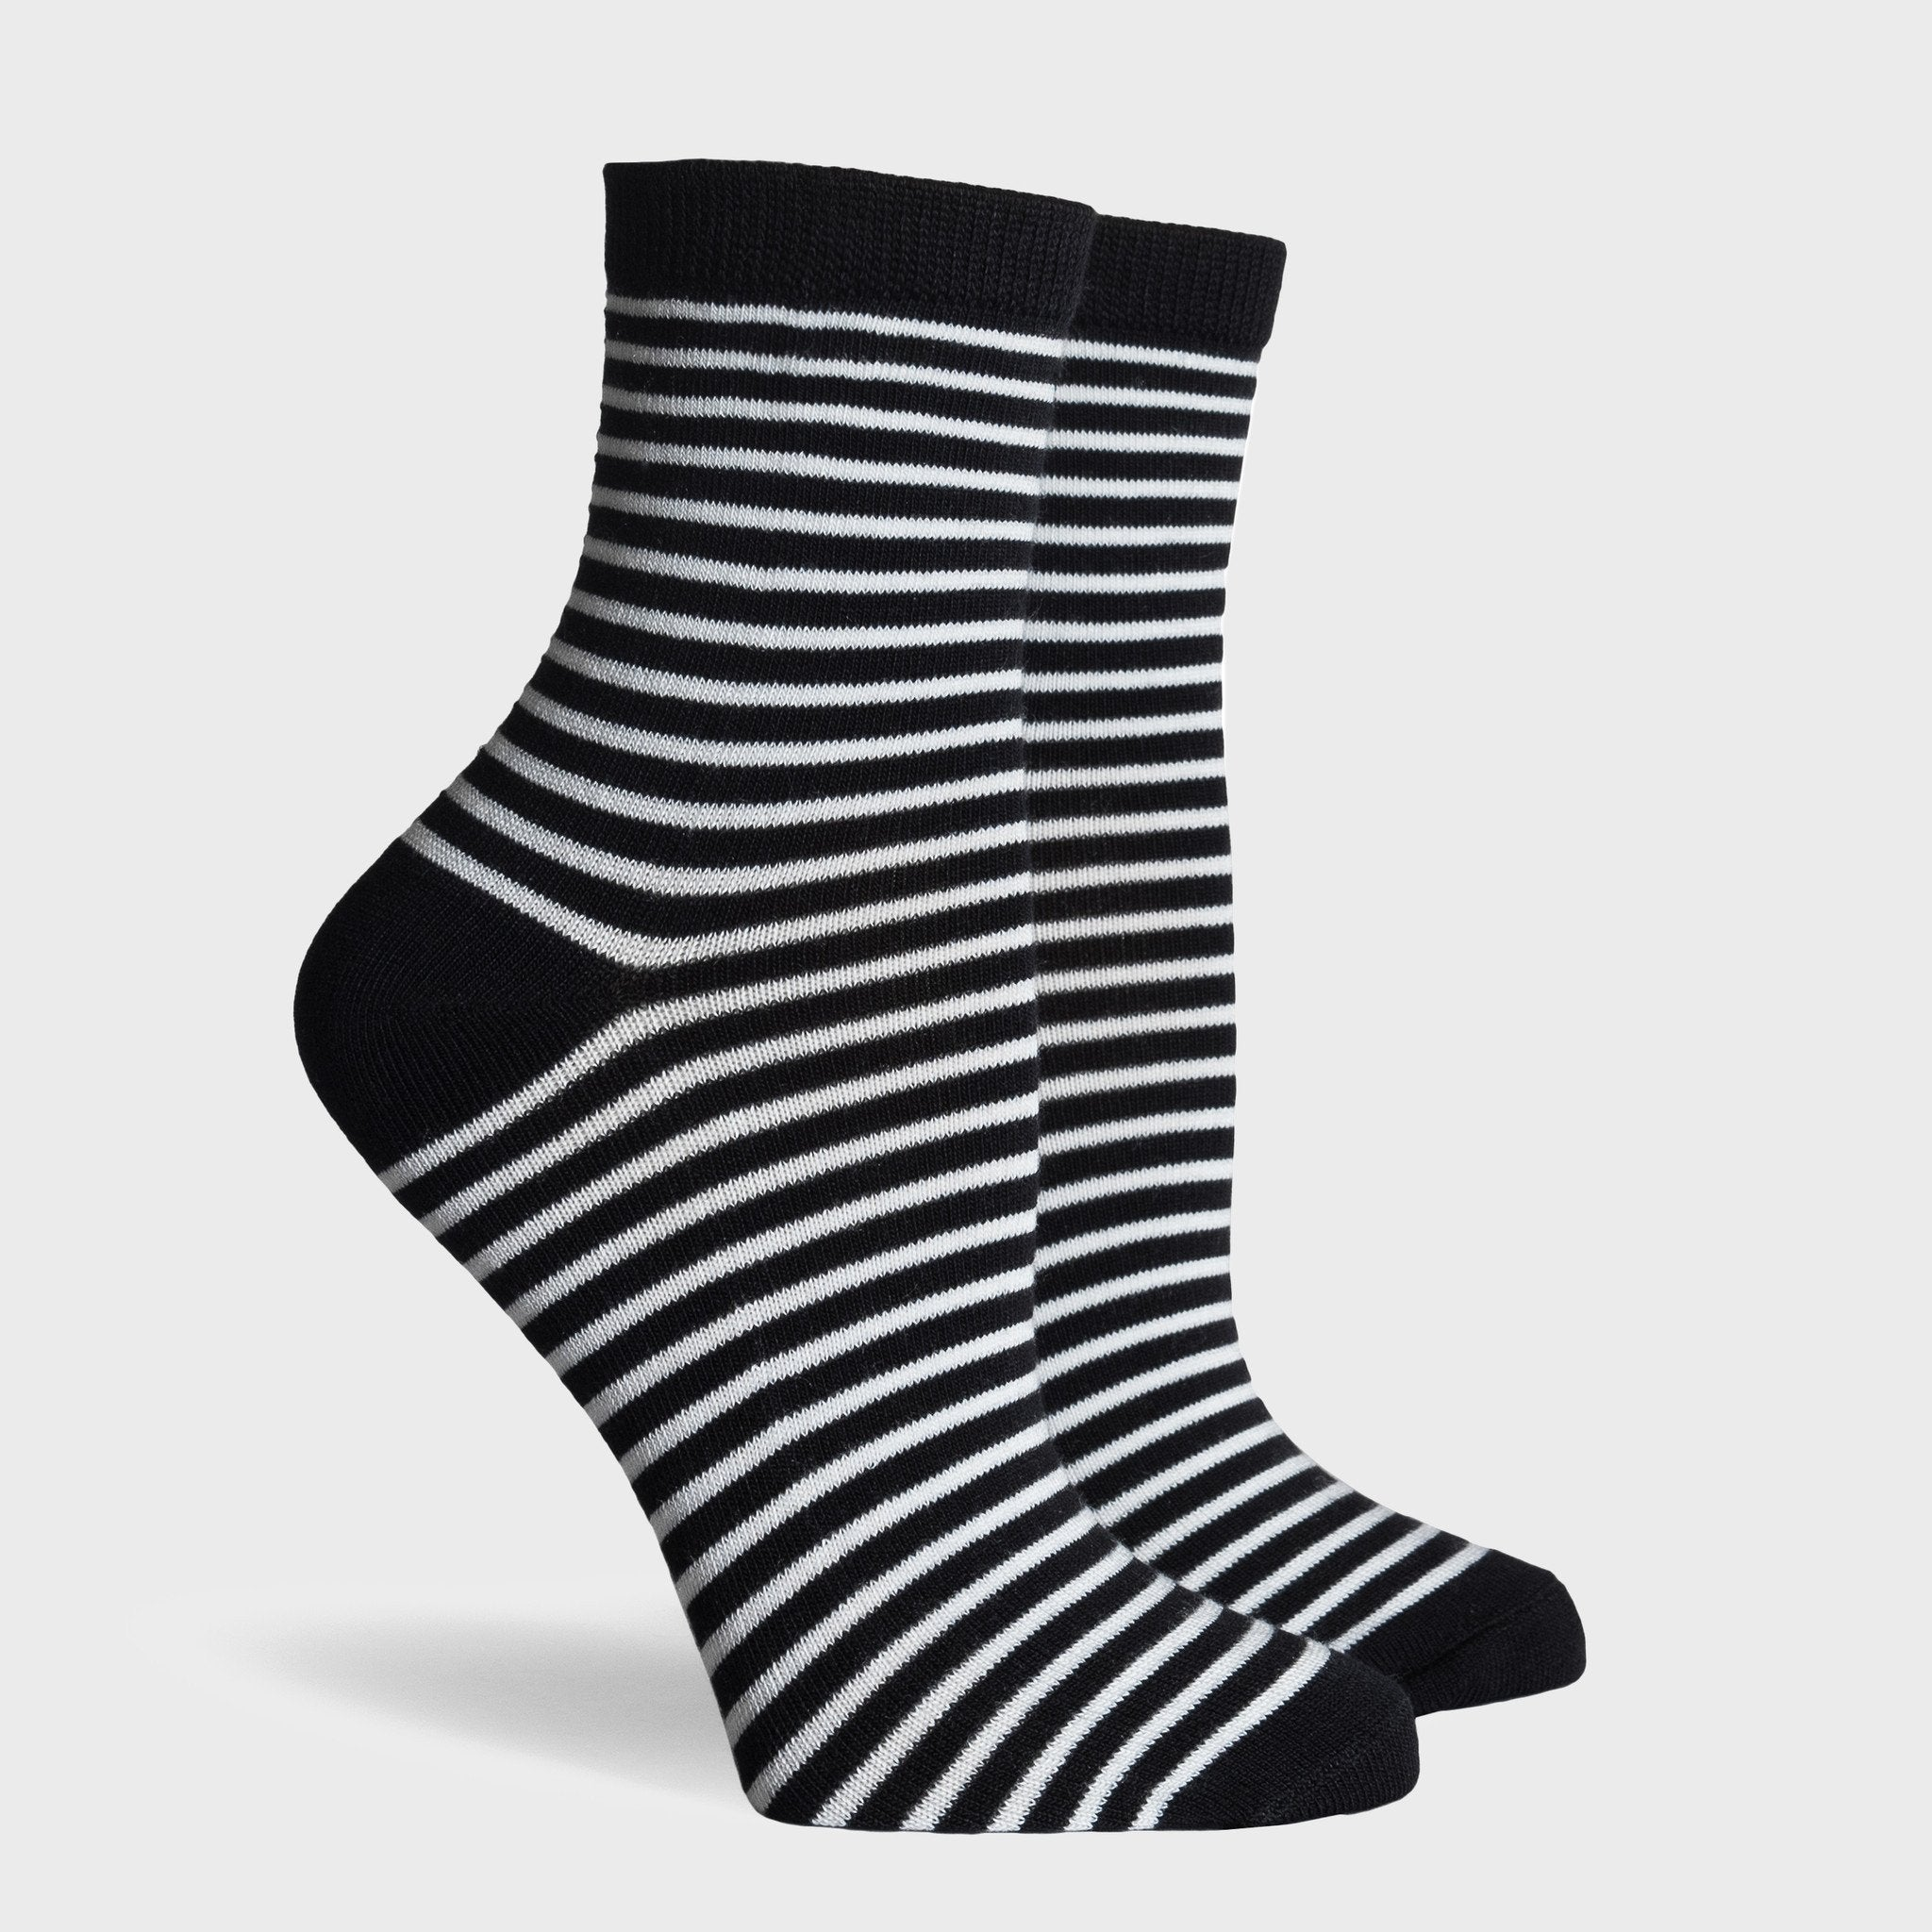 Richer Poorer Skimmer Socks Black/White